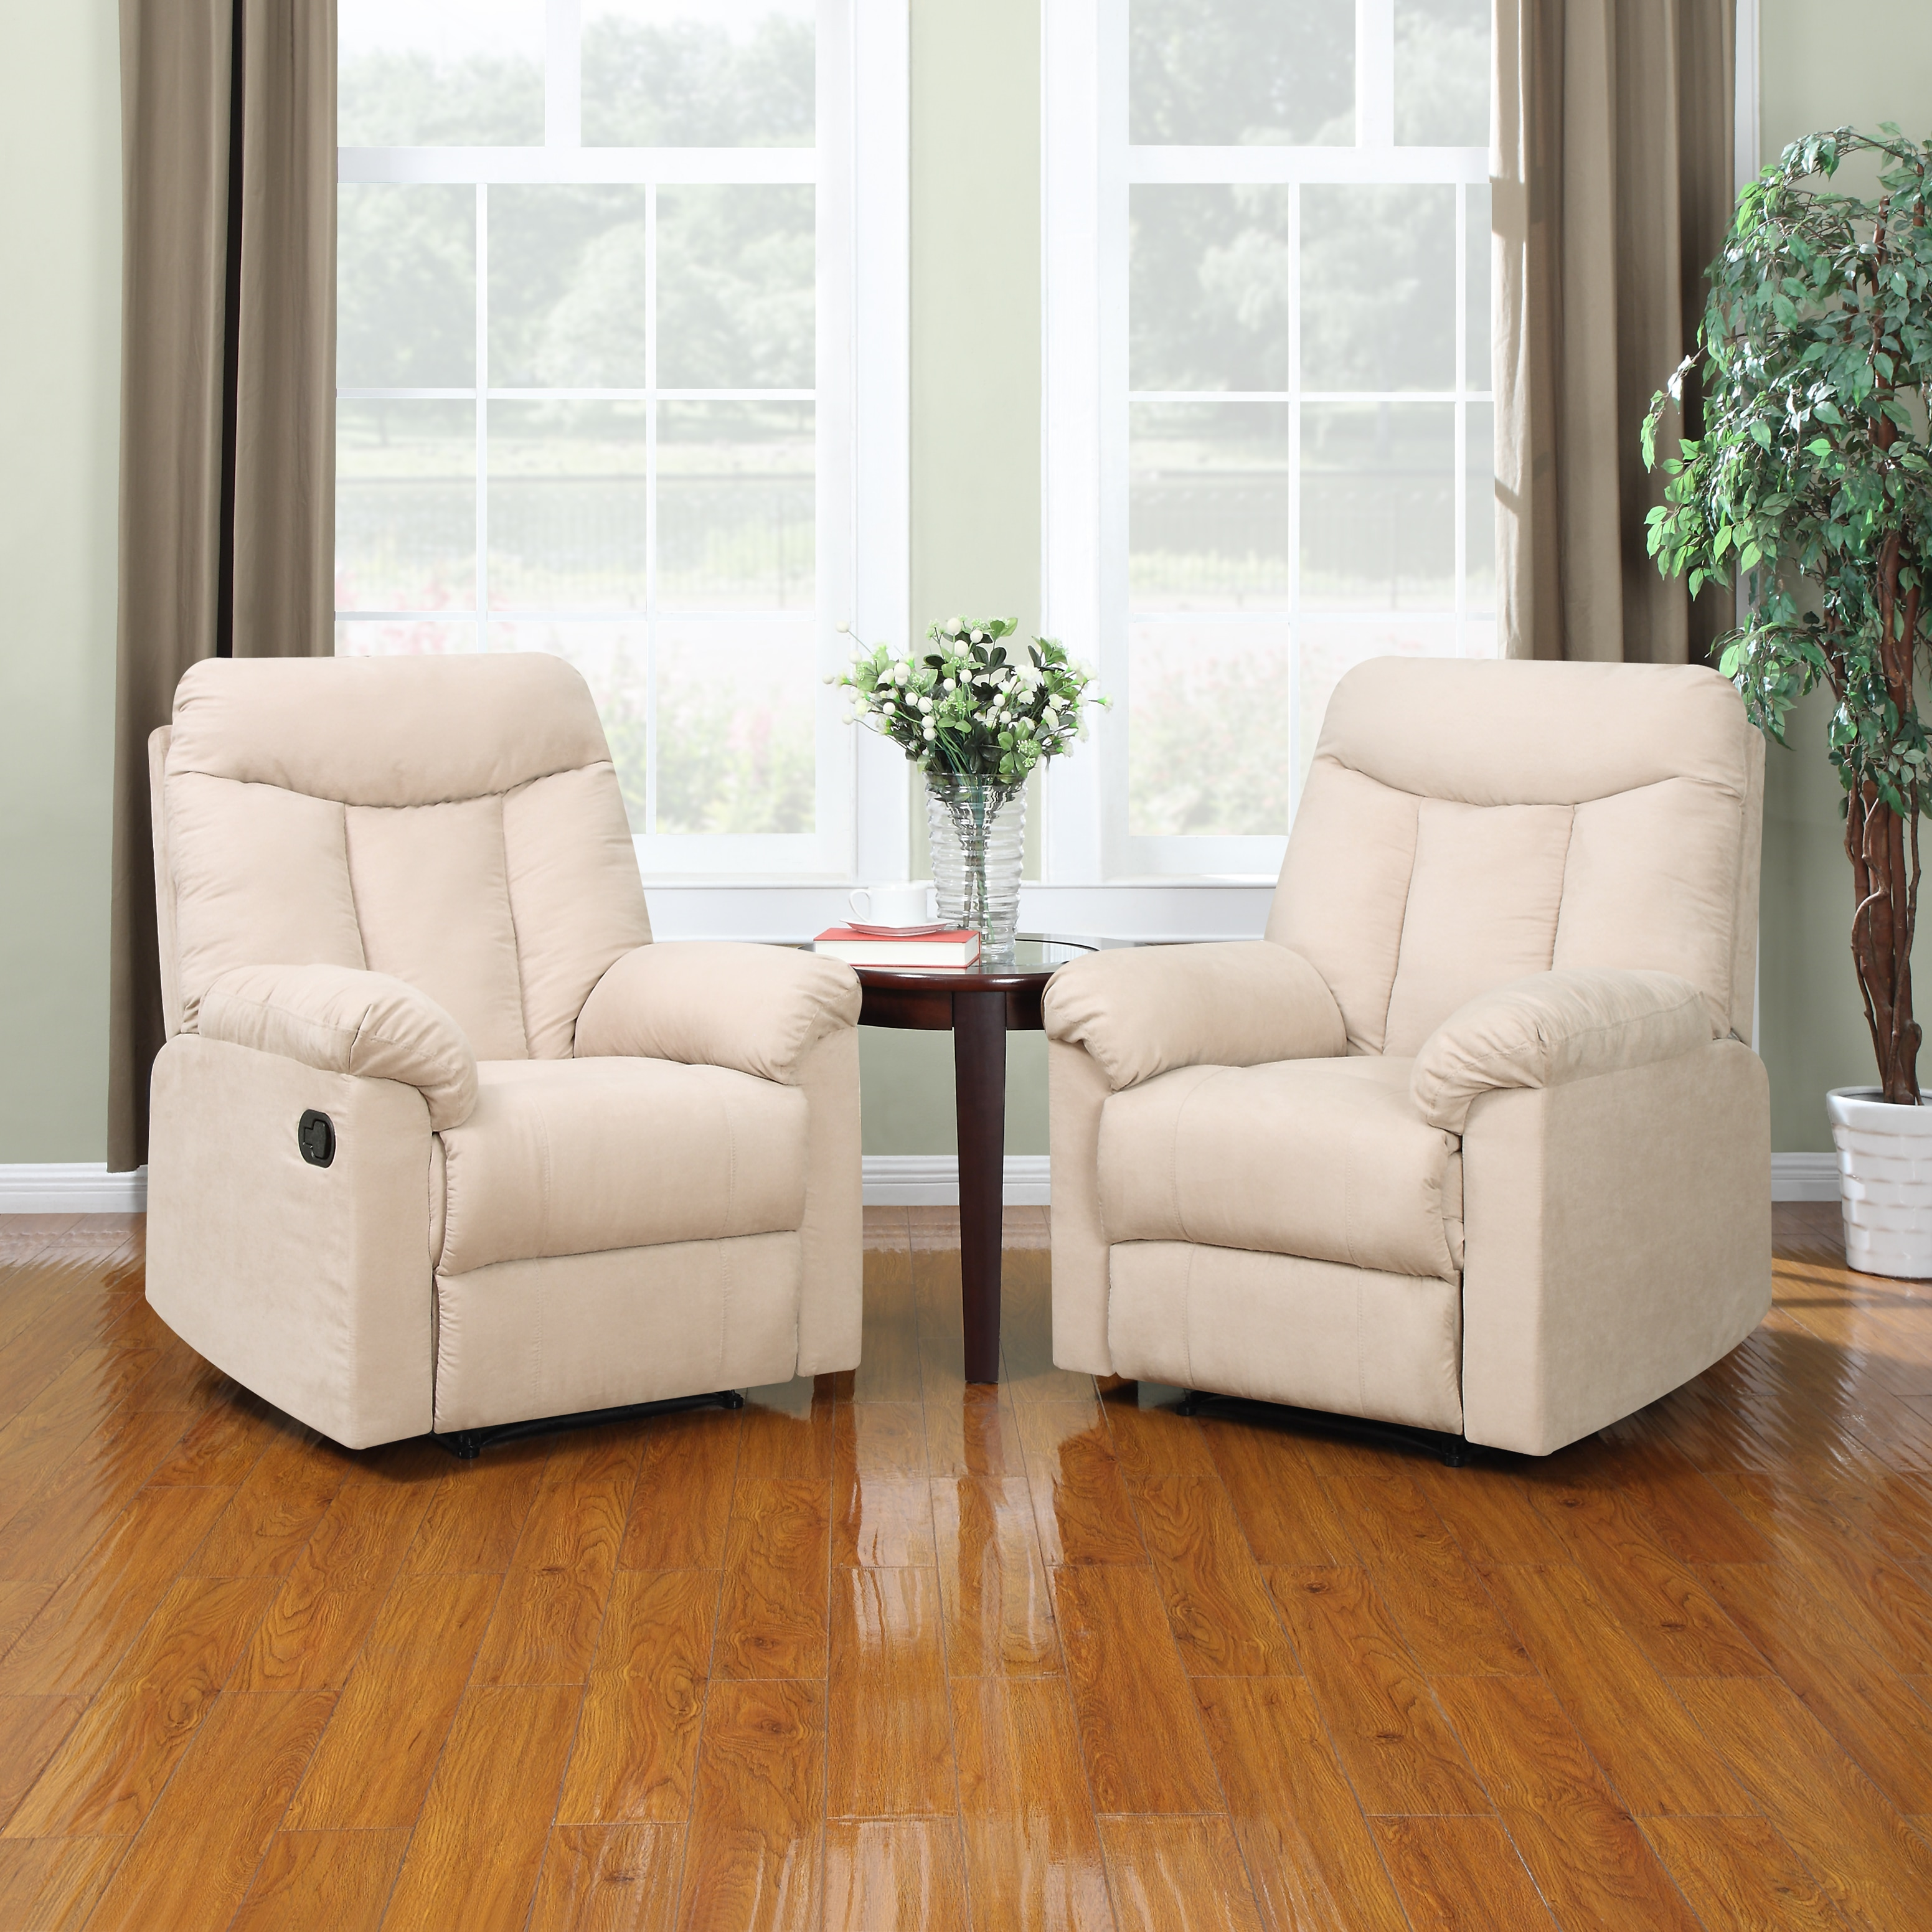 Portfolio ProLounger Wall Hugger Khaki Microfiber Recliners (Set of 2) at Sears.com